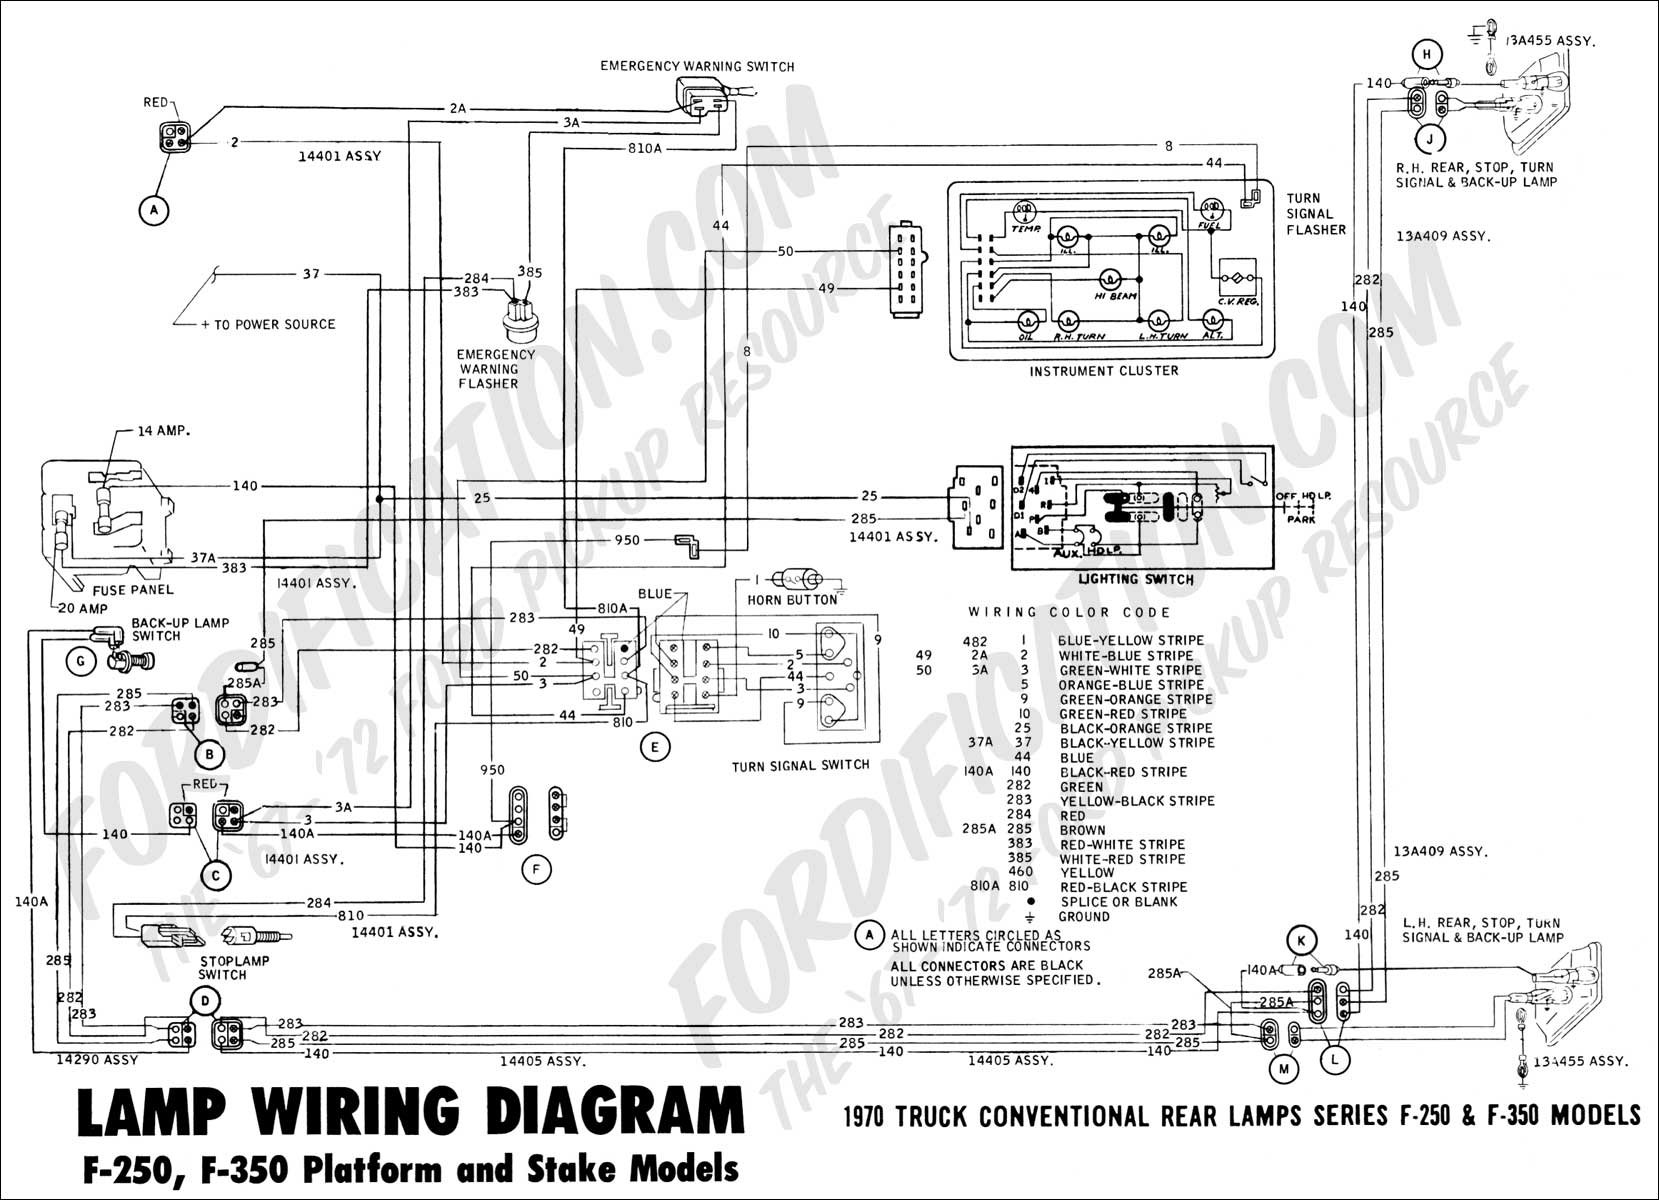 93 Ranger Fuse Diagram Wire Data Schema 92 F250 Ford Truck Technical Drawings And Schematics Section H 1993